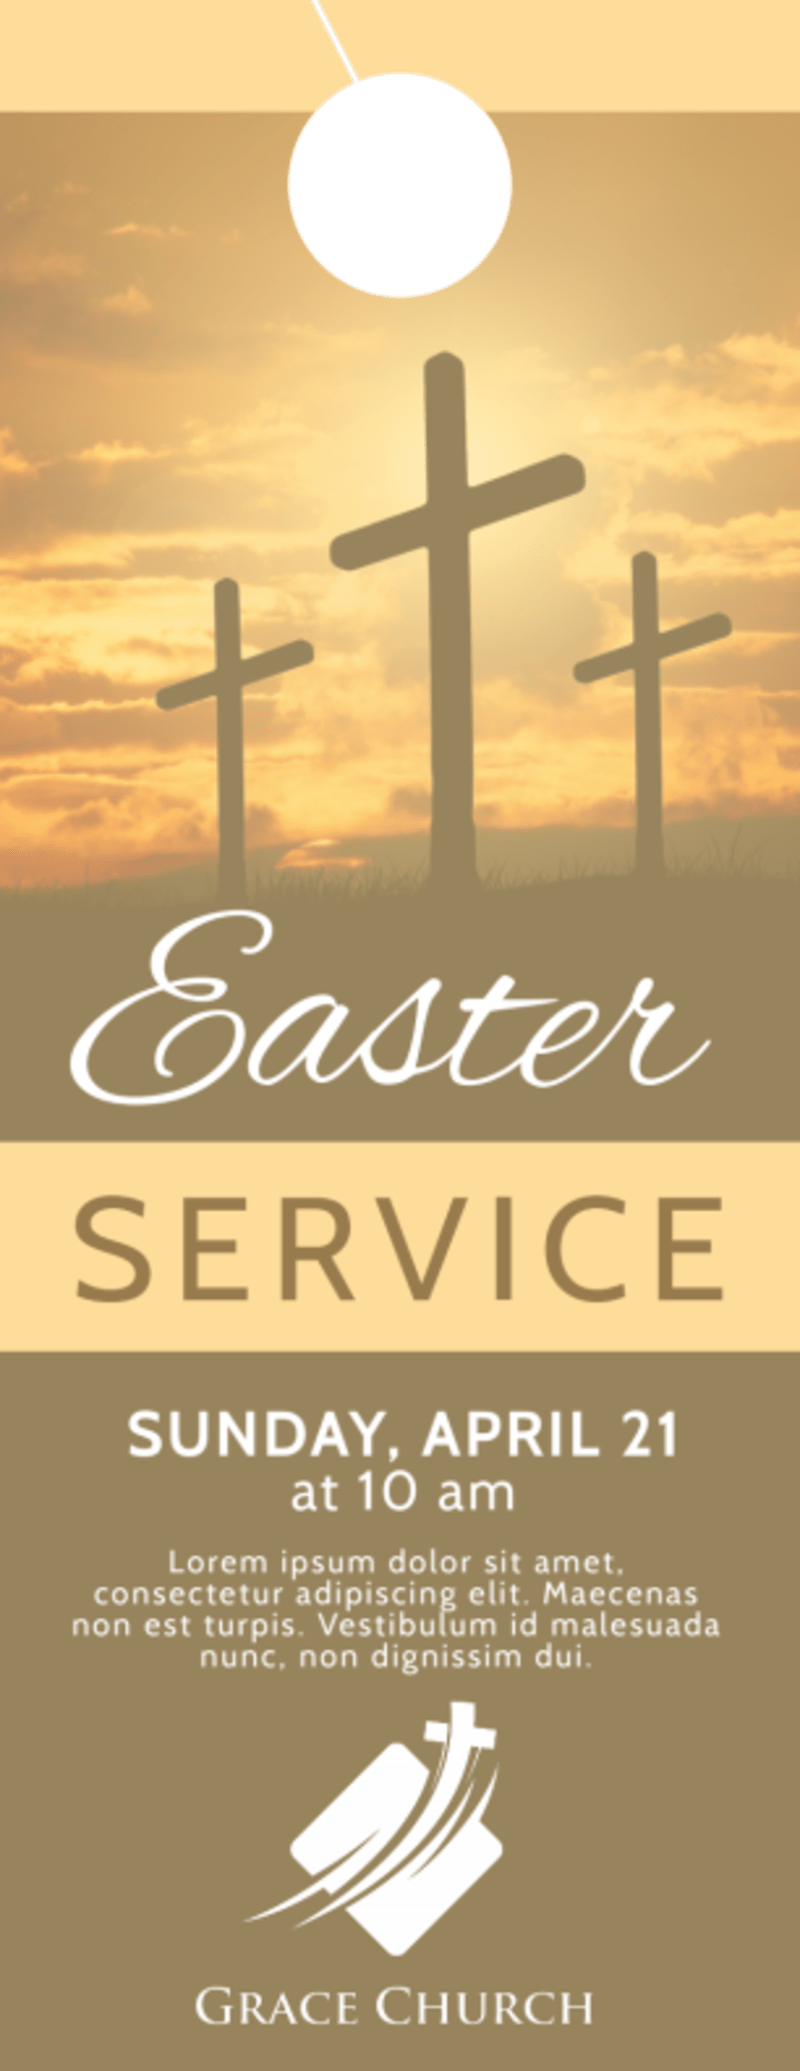 Church Easter Service Door Hanger Template Preview 2